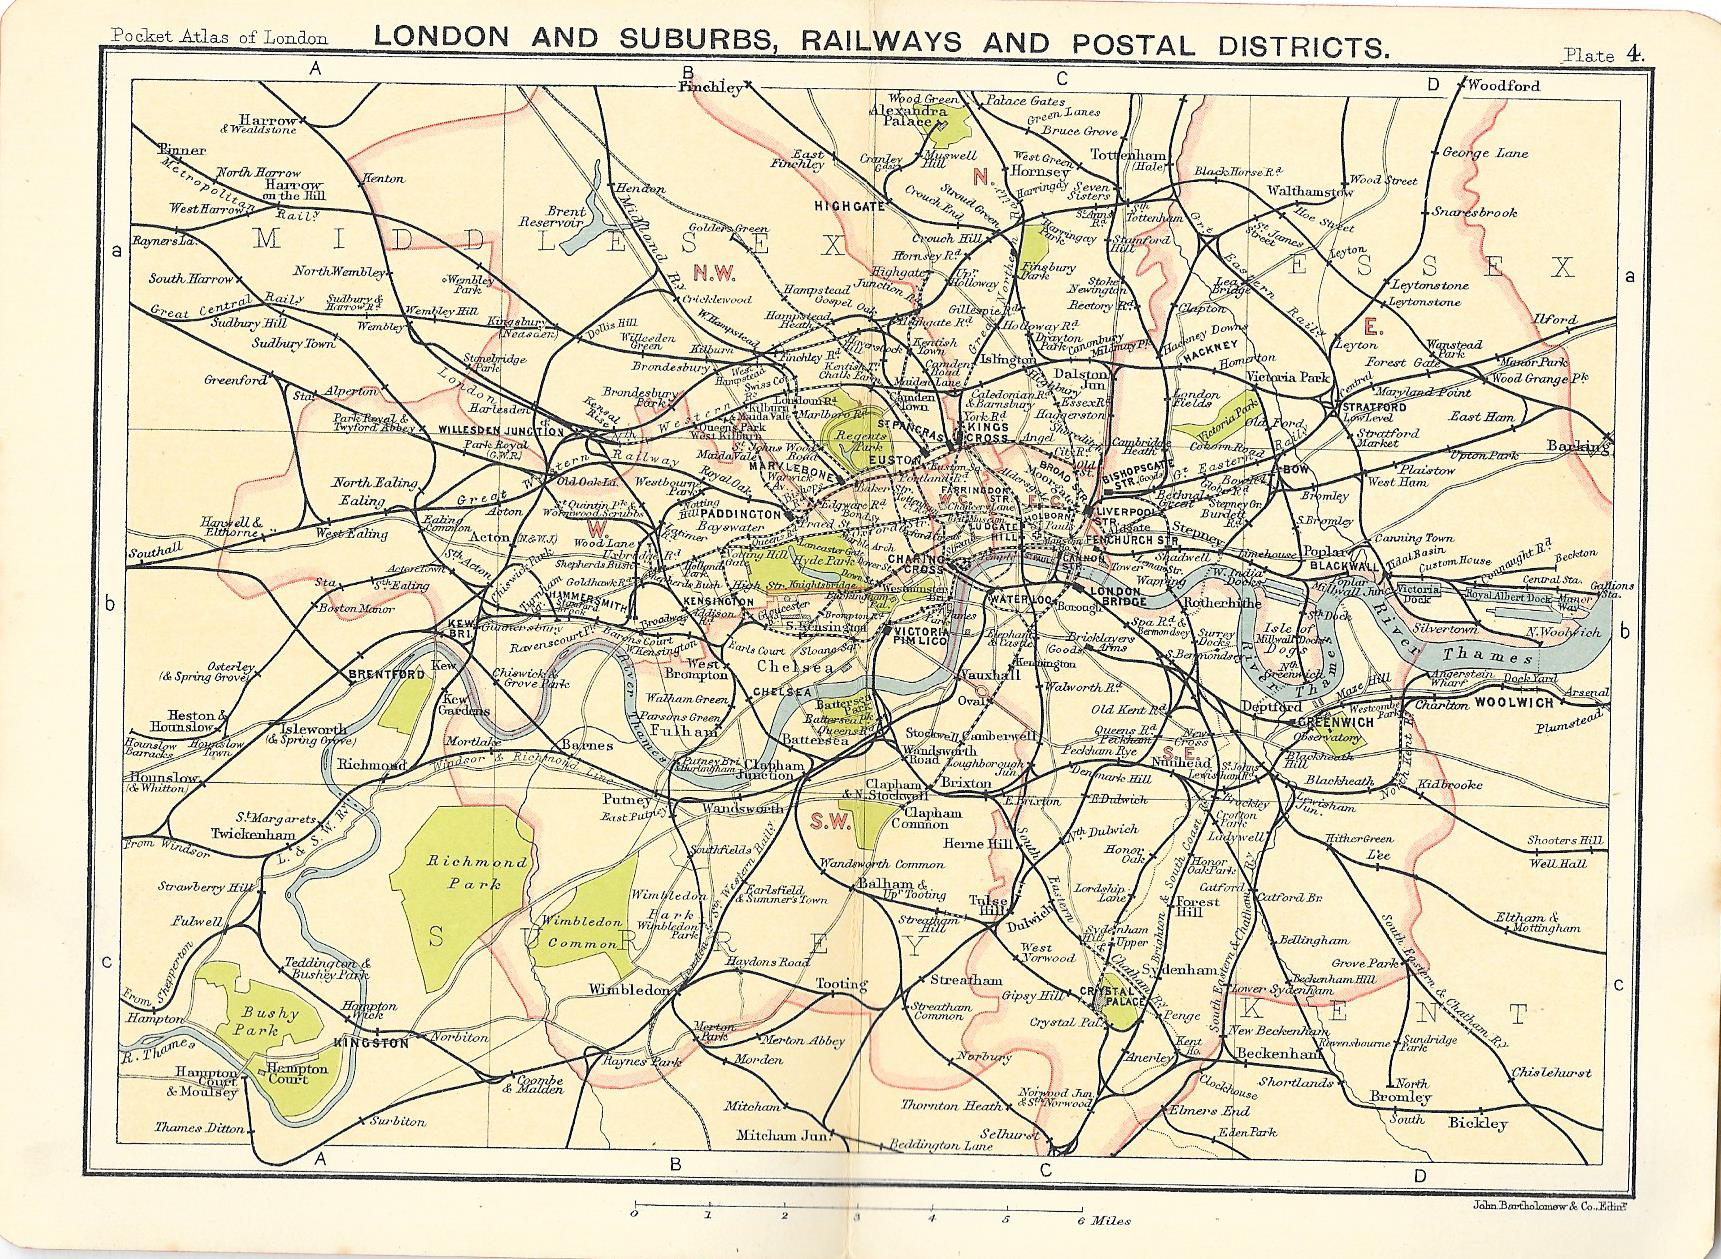 London Map Districts.Railways And Postal Districts Map Of London Suburbs Frontispiece